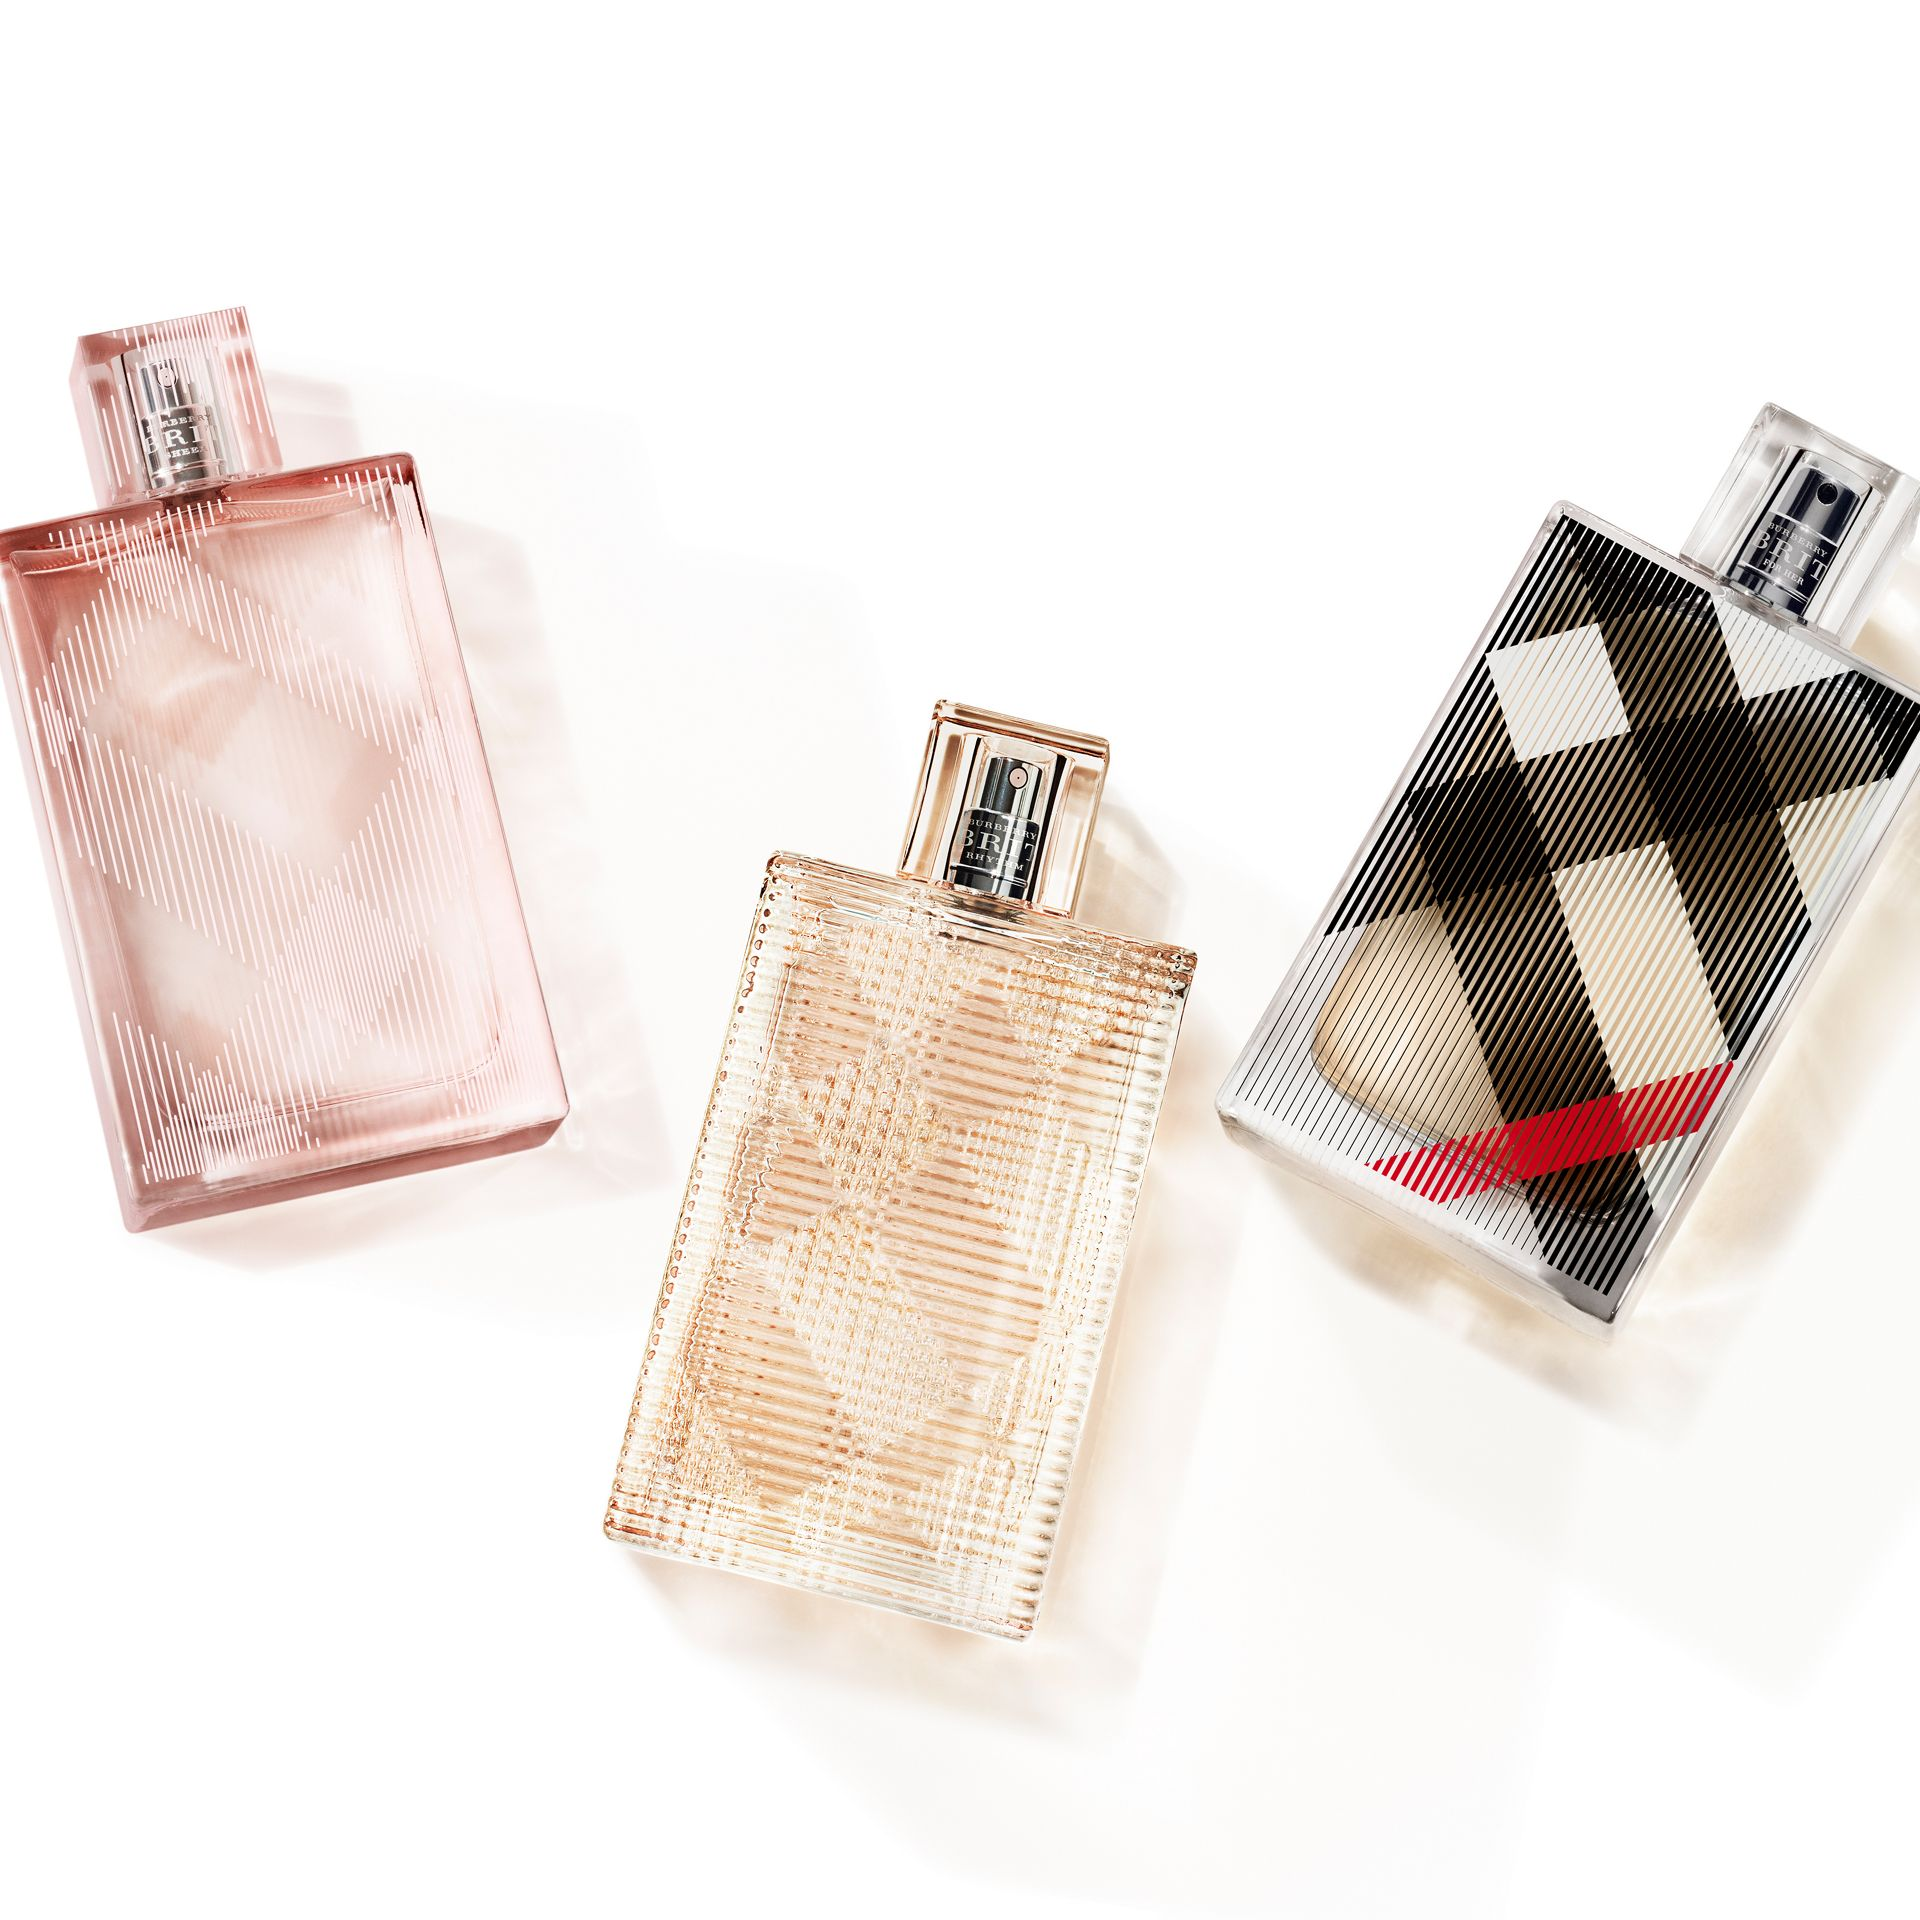 Burberry Brit Sheer Eau de Toilette 100ml - gallery image 3